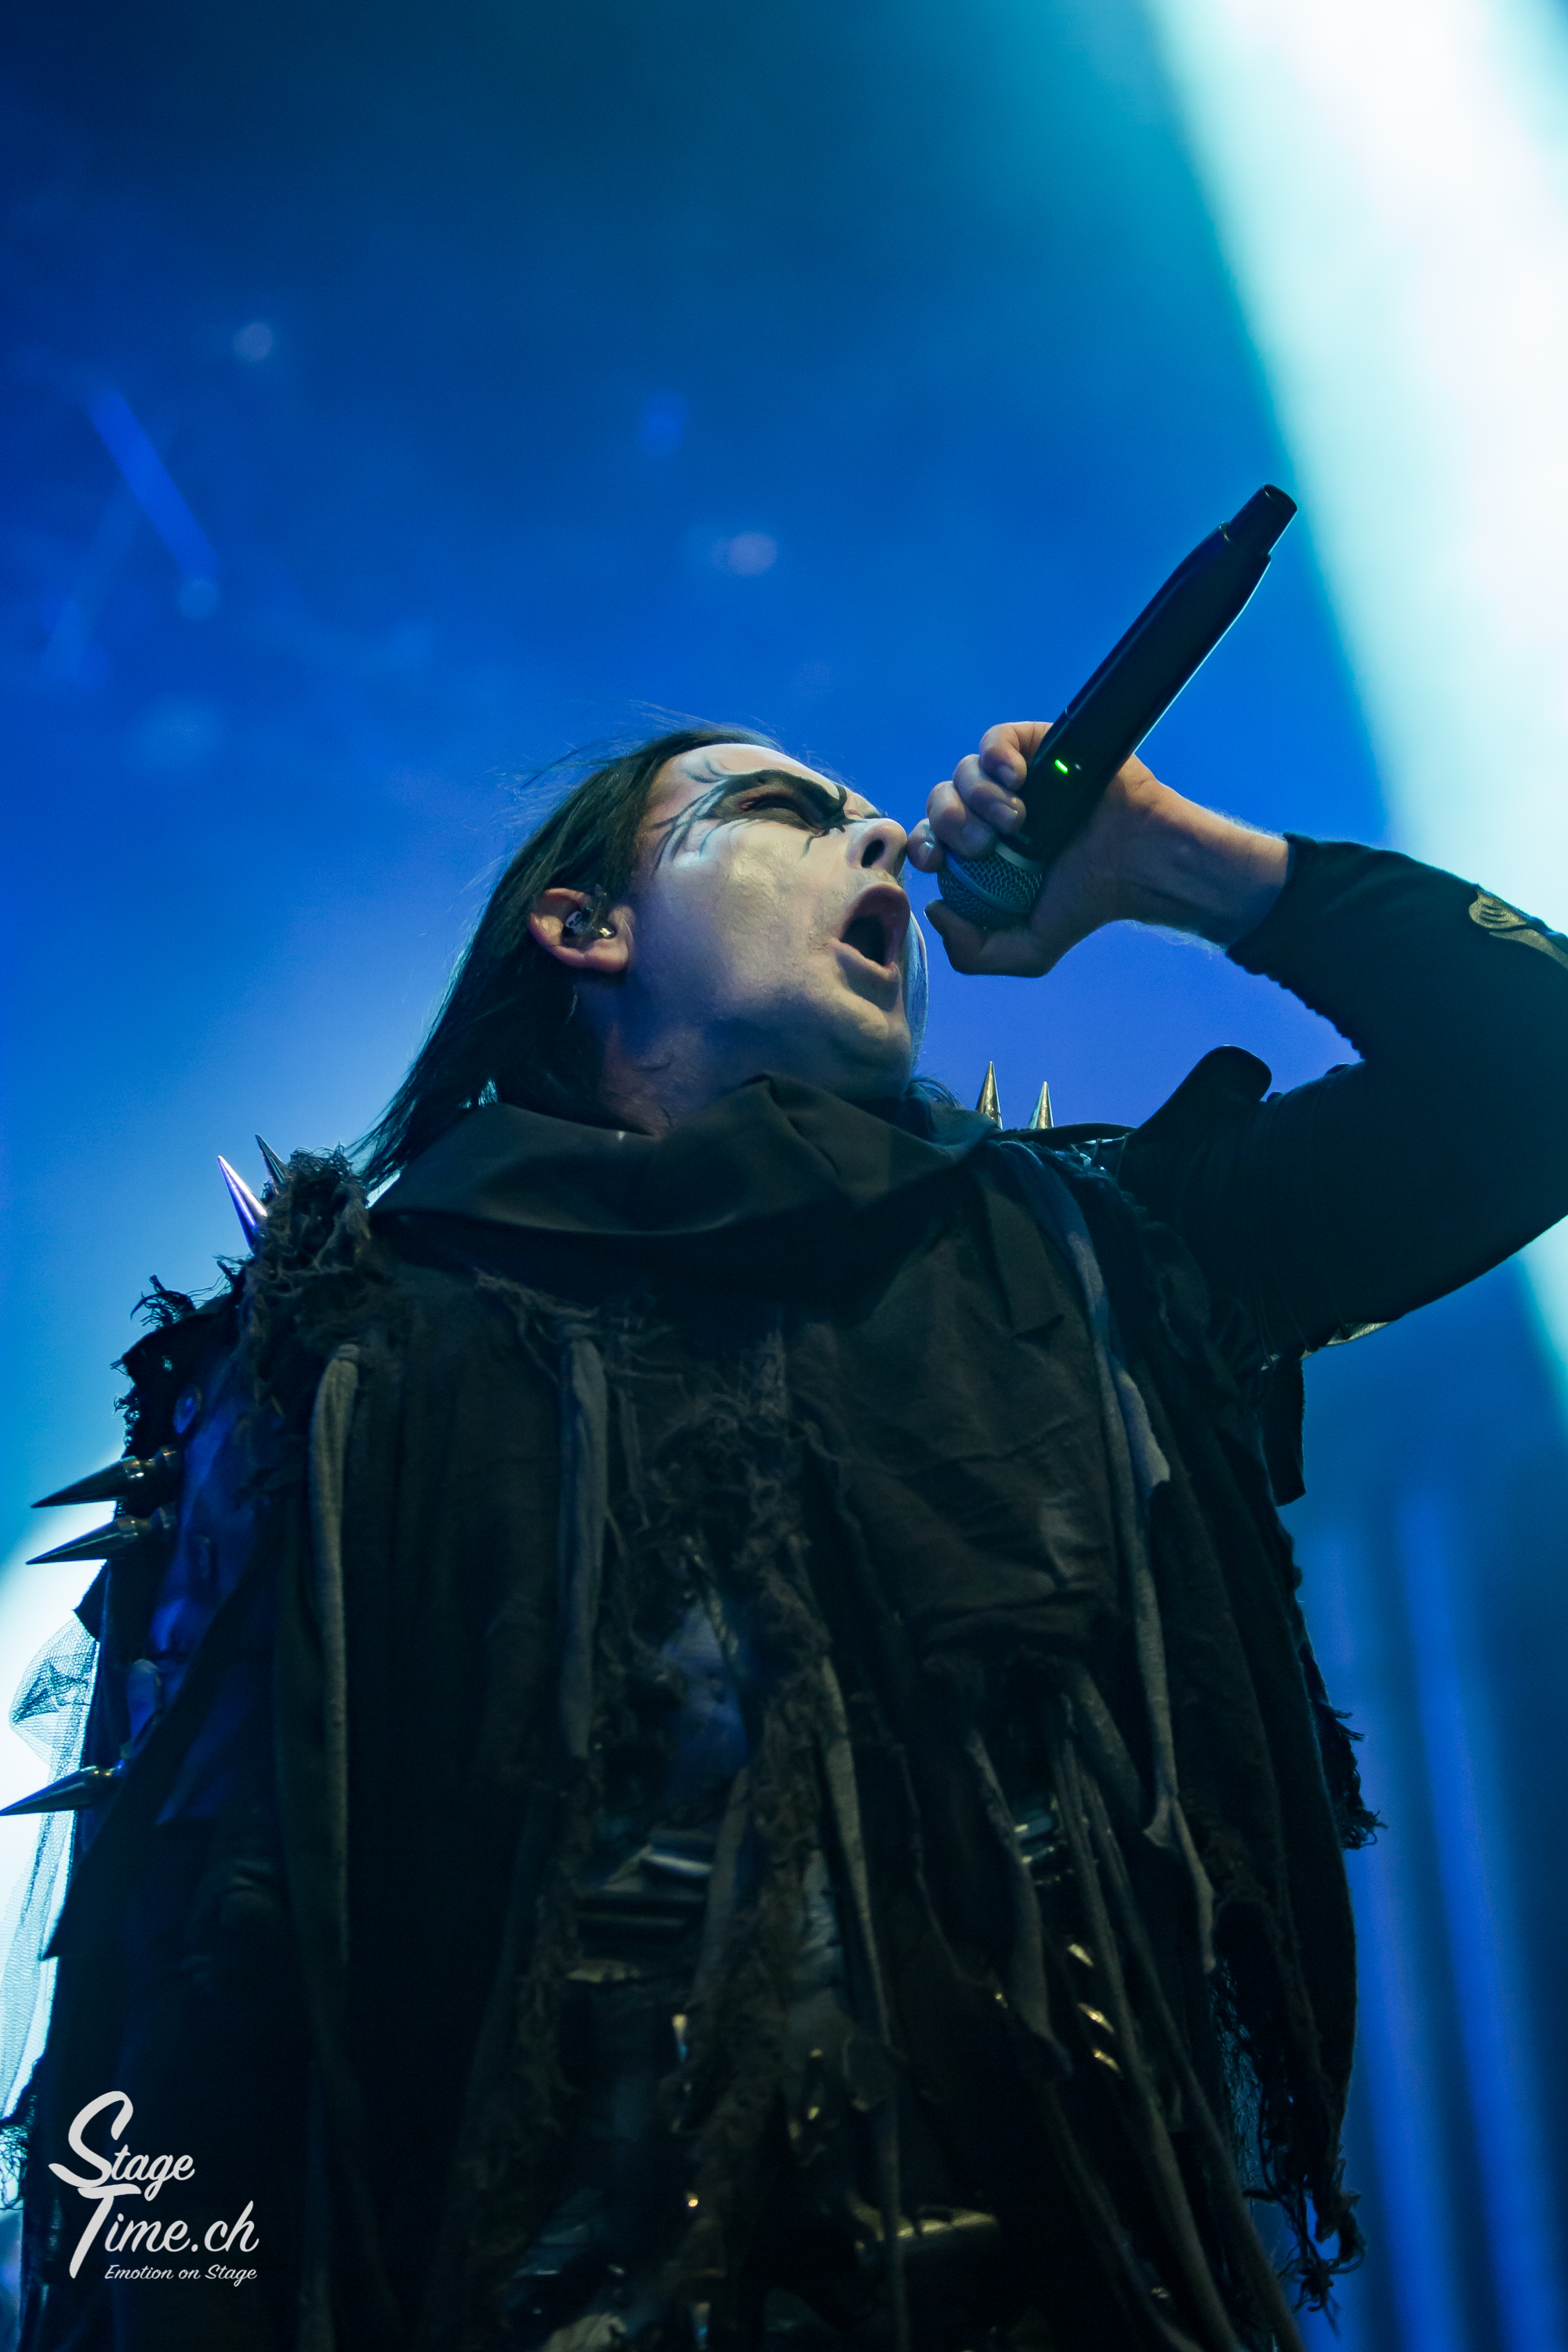 Cradle_of_Filth_(Foto-Christoph_Gurtner-_Stagetime.ch)